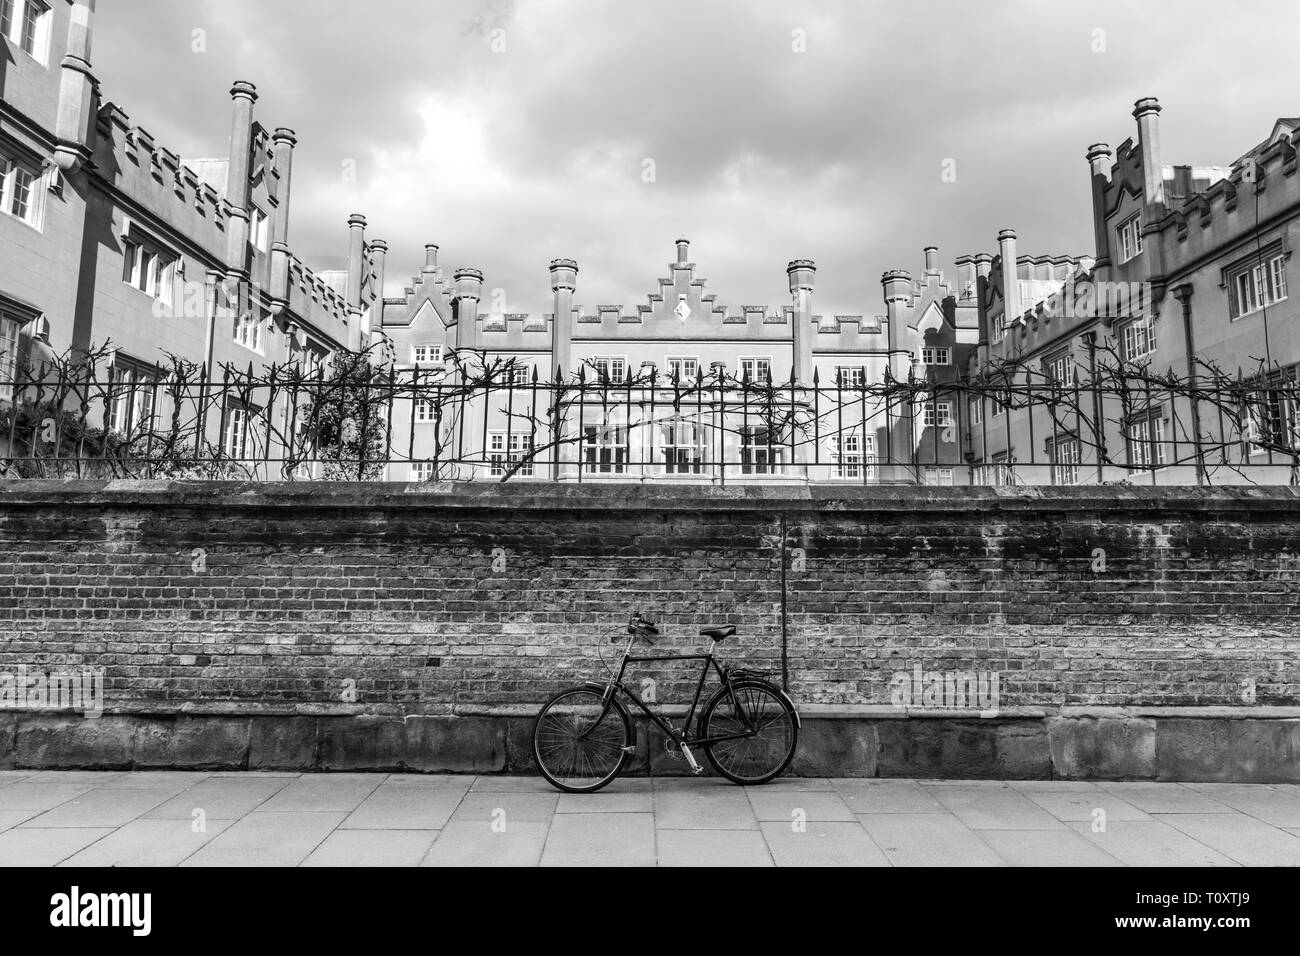 Cambridge, UK - March 14 2019: Sidney Sussex College which is a member of the Univarsity of Cambridge, Cambridge, England. - Stock Image